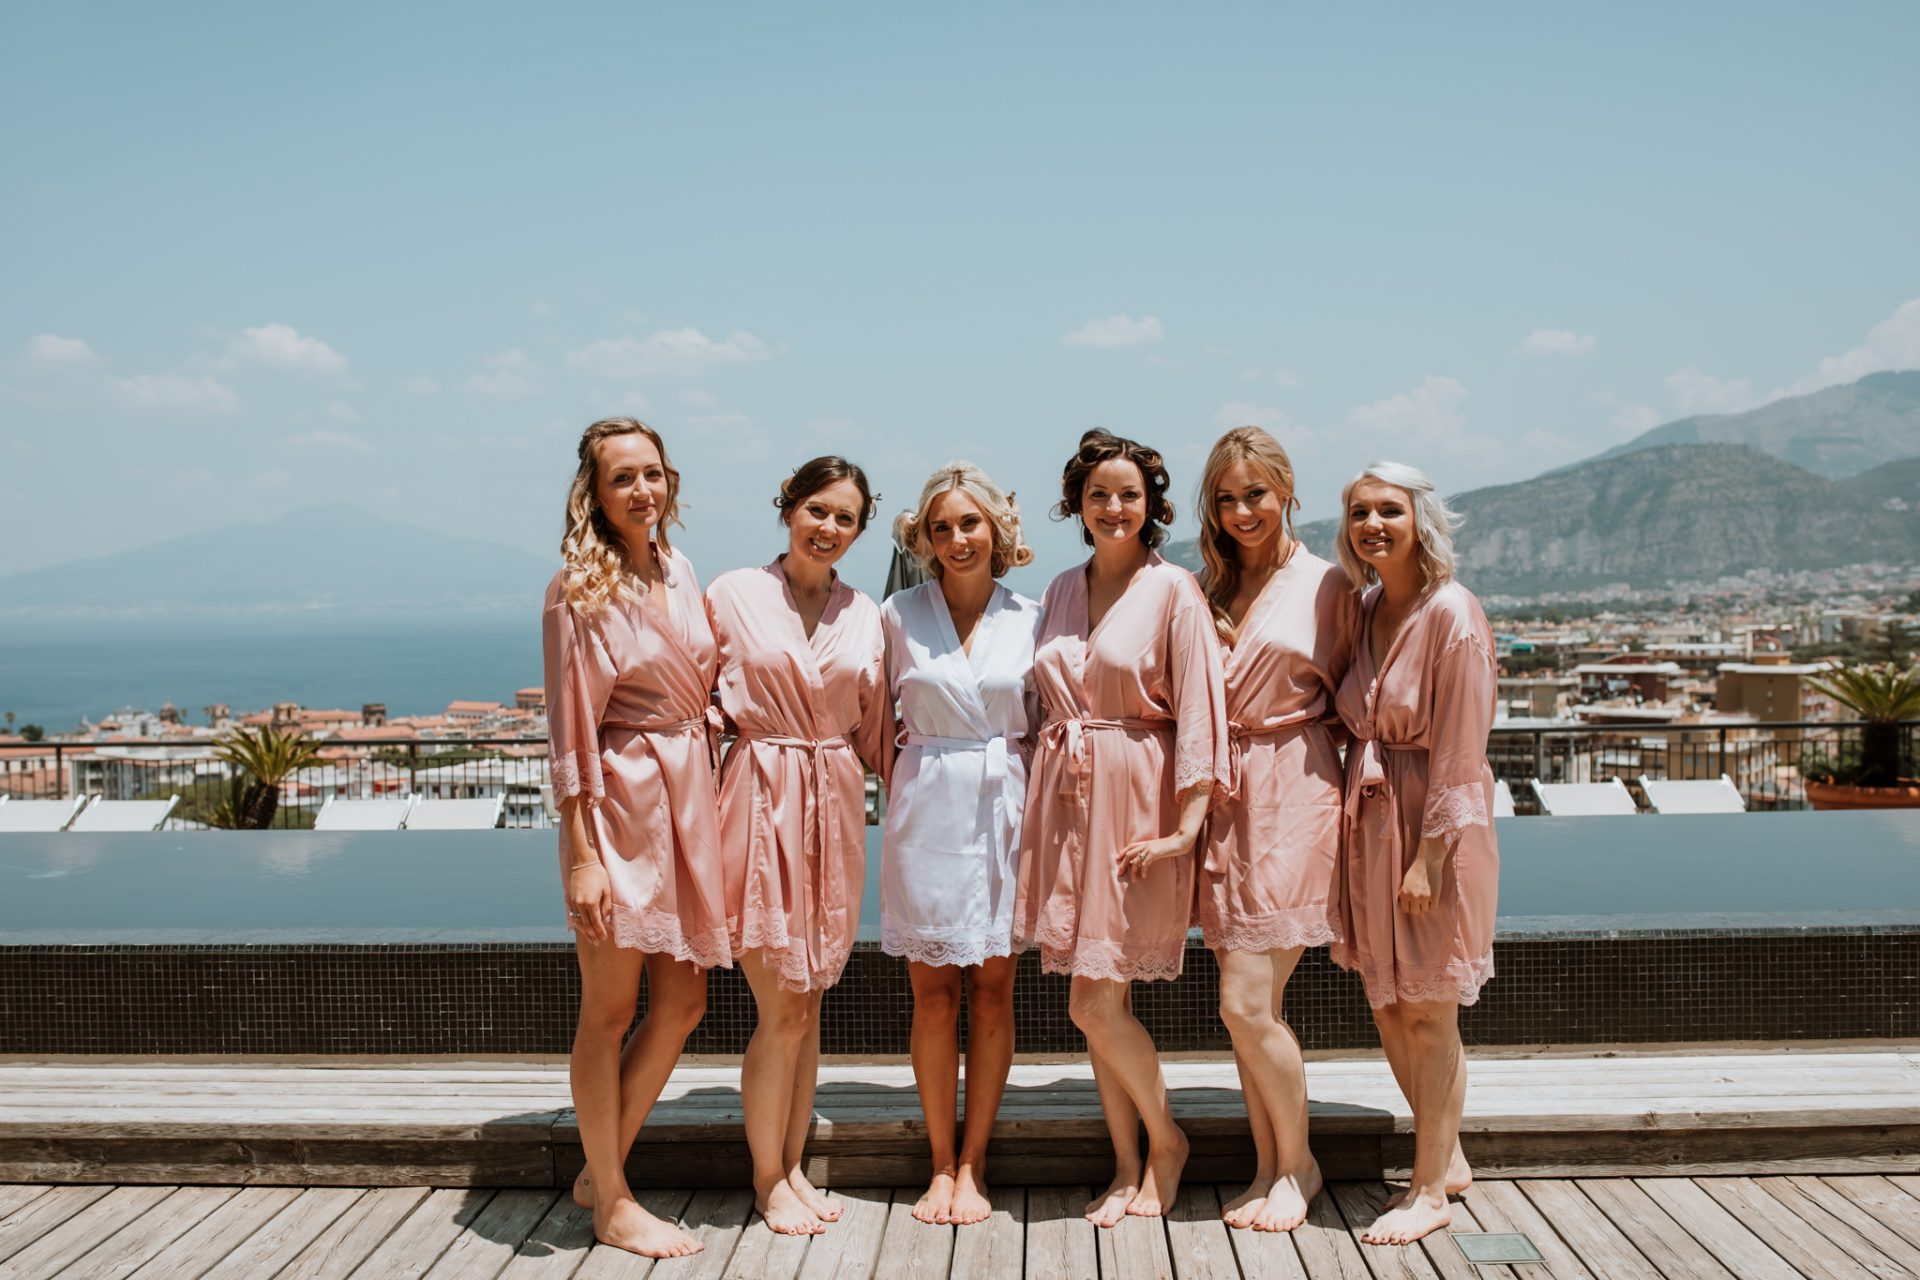 bridesmaids and bride on rooftop with views of sorrento